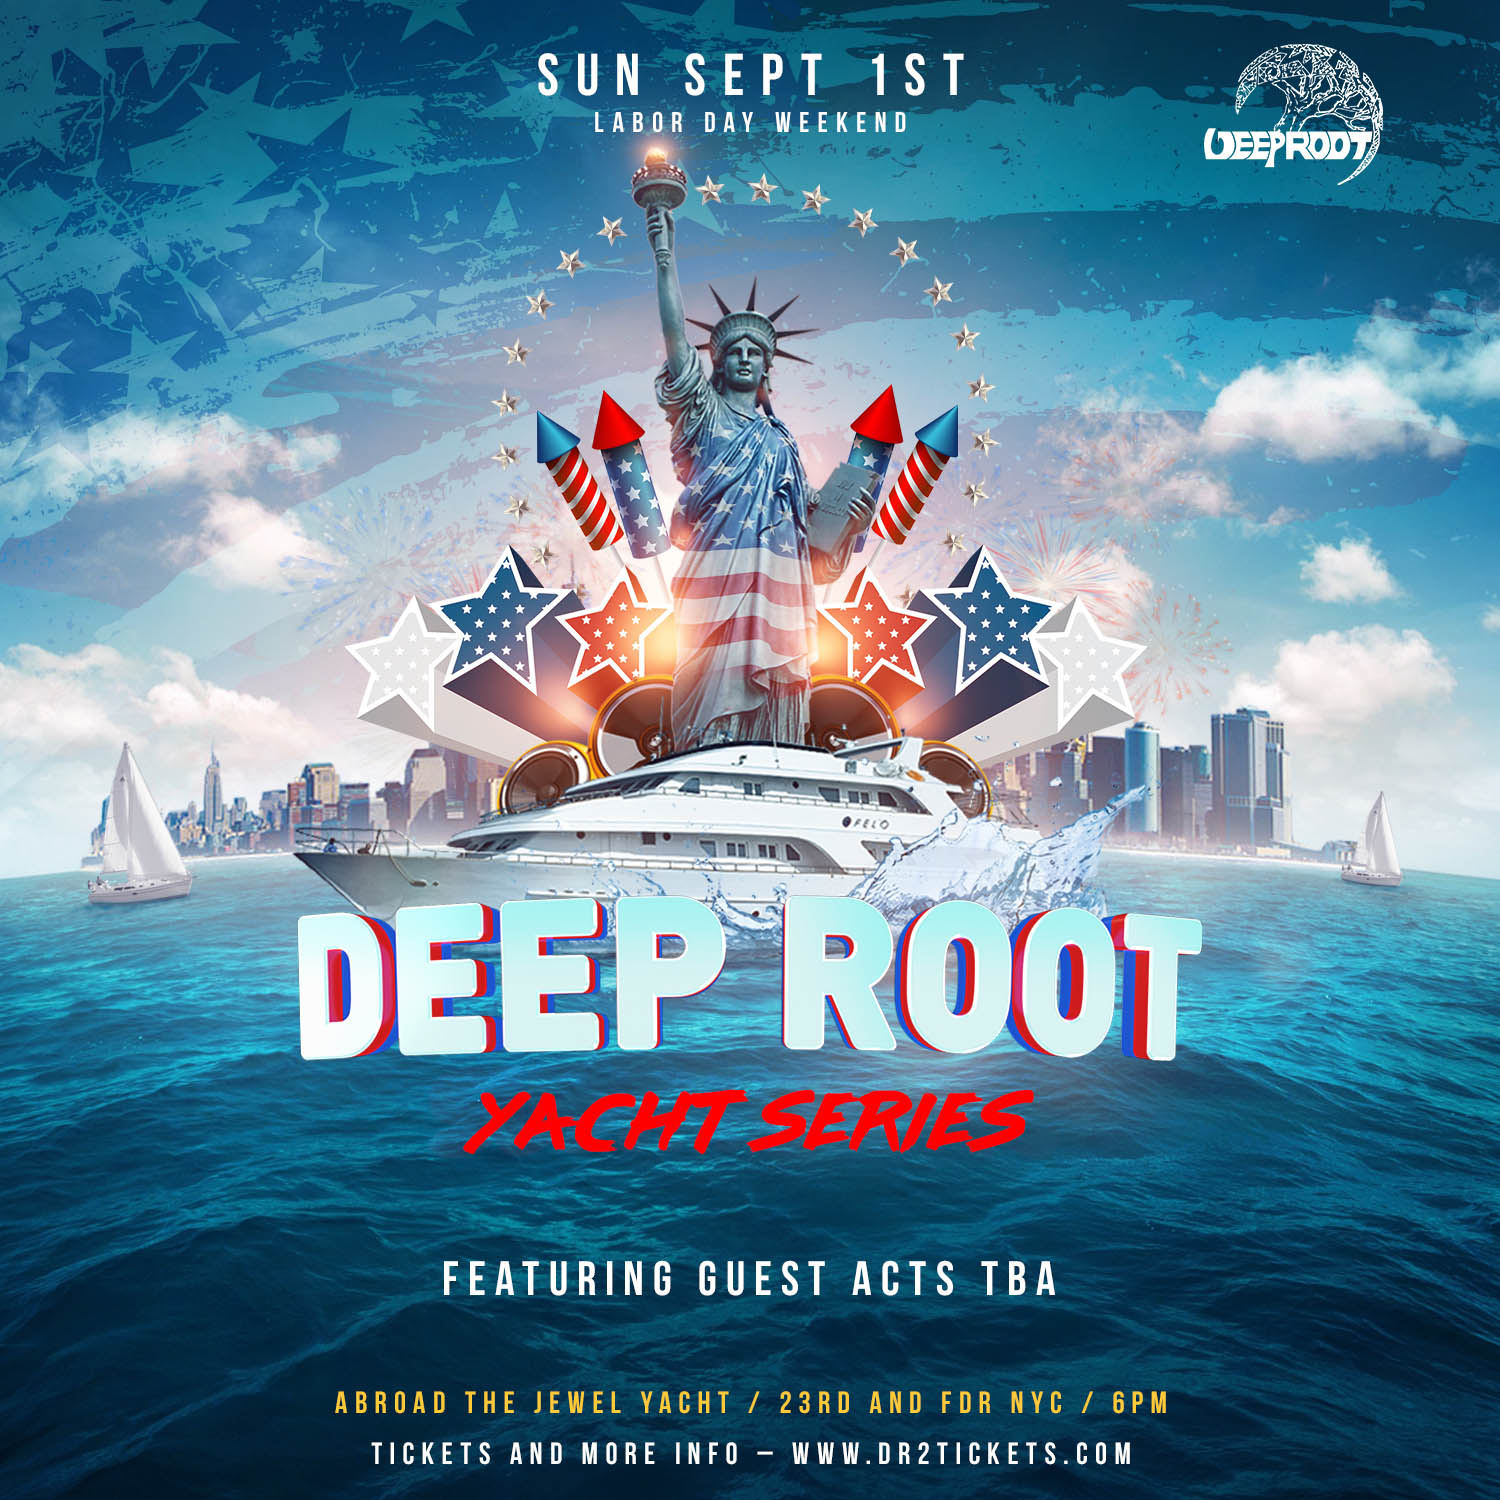 Labor Day Weekend '19 Yacht Party